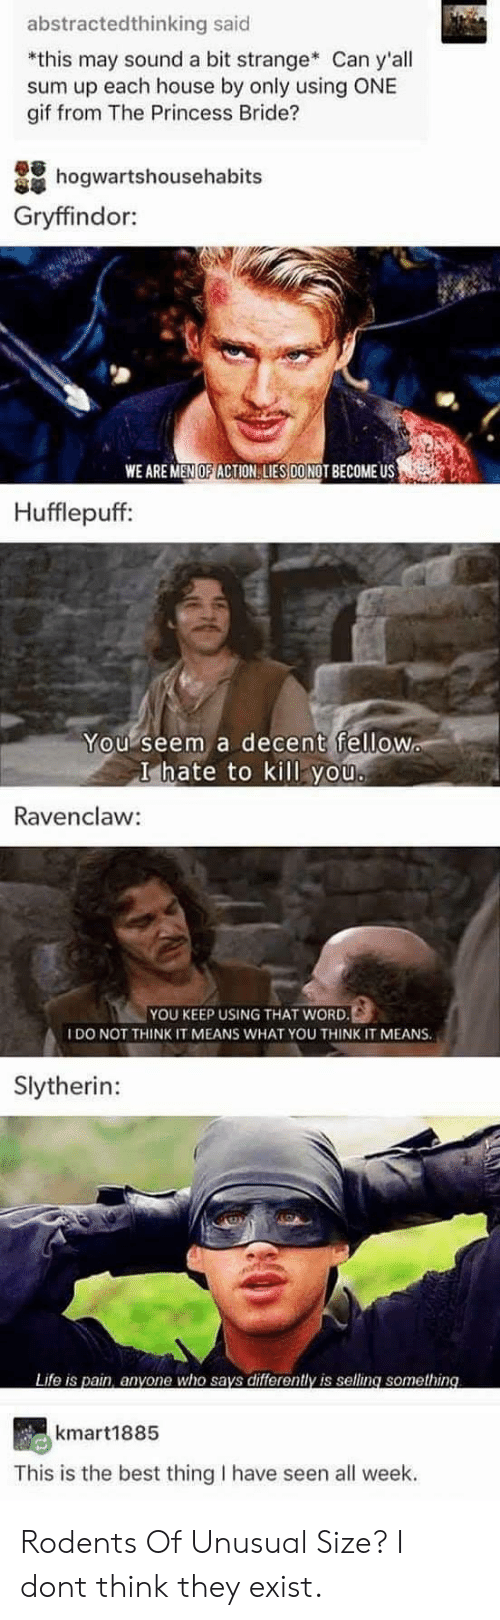 princess bride: abstractedthinking said  *this may sound a bit strange Can y'all  sum up each house by only using ONE  gif from The Princess Bride?  hogwartshousehabits  Gryffindor:  WE ARE MEN OF ACTION LIES DONOT BECOME US  Hufflepuff:  You seem a decent fellow  I hate to kill you  Ravenclaw:  YOU KEEP USING THAT WORD.  IDO NOT THINK IT MEANS WHAT YOU THINK IT MEANS.  Slytherin:  Life is pain, anyone who says differently is selling something  kmart1885  This is the best thing I have seen all week. Rodents Of Unusual Size? I dont think they exist.